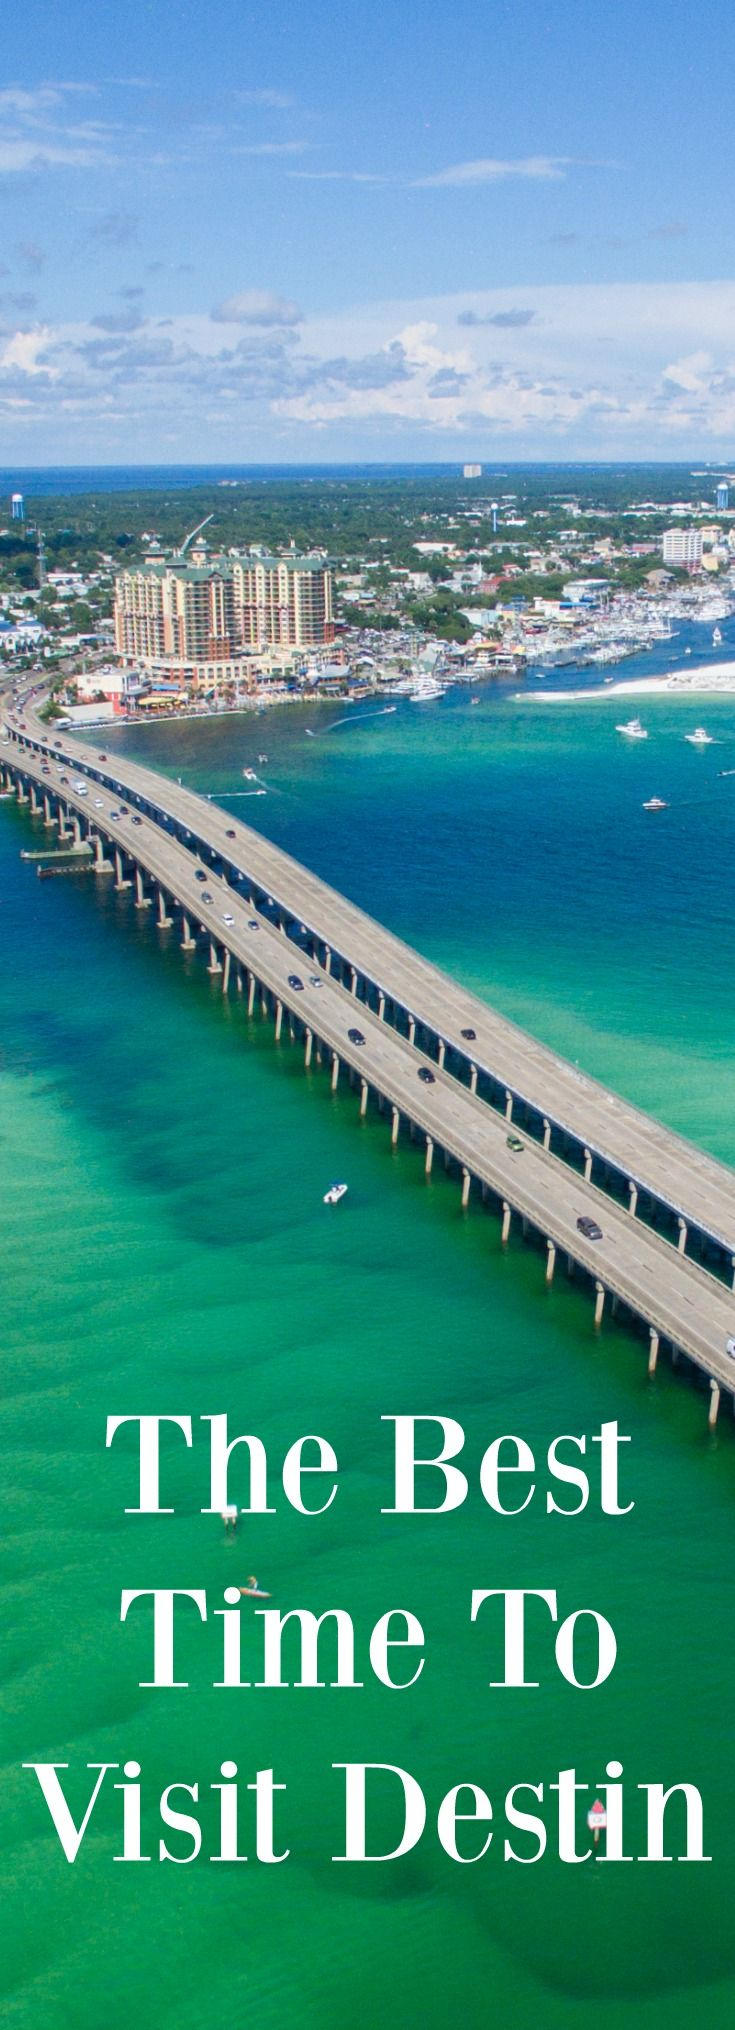 There are many factors to consider when deciding when the best time to visit Destin, Florida is. For some, the most important thing might be visiting while the weather is warm. Others might prefer a relaxing getaway that doesn't cost an arm and a leg, while some might plan their trip based on local events and festivals. No matter what your vacation preference is, we're shining a spotlight on this popular Florida destination and giving you tips on when to book your Destin rental.